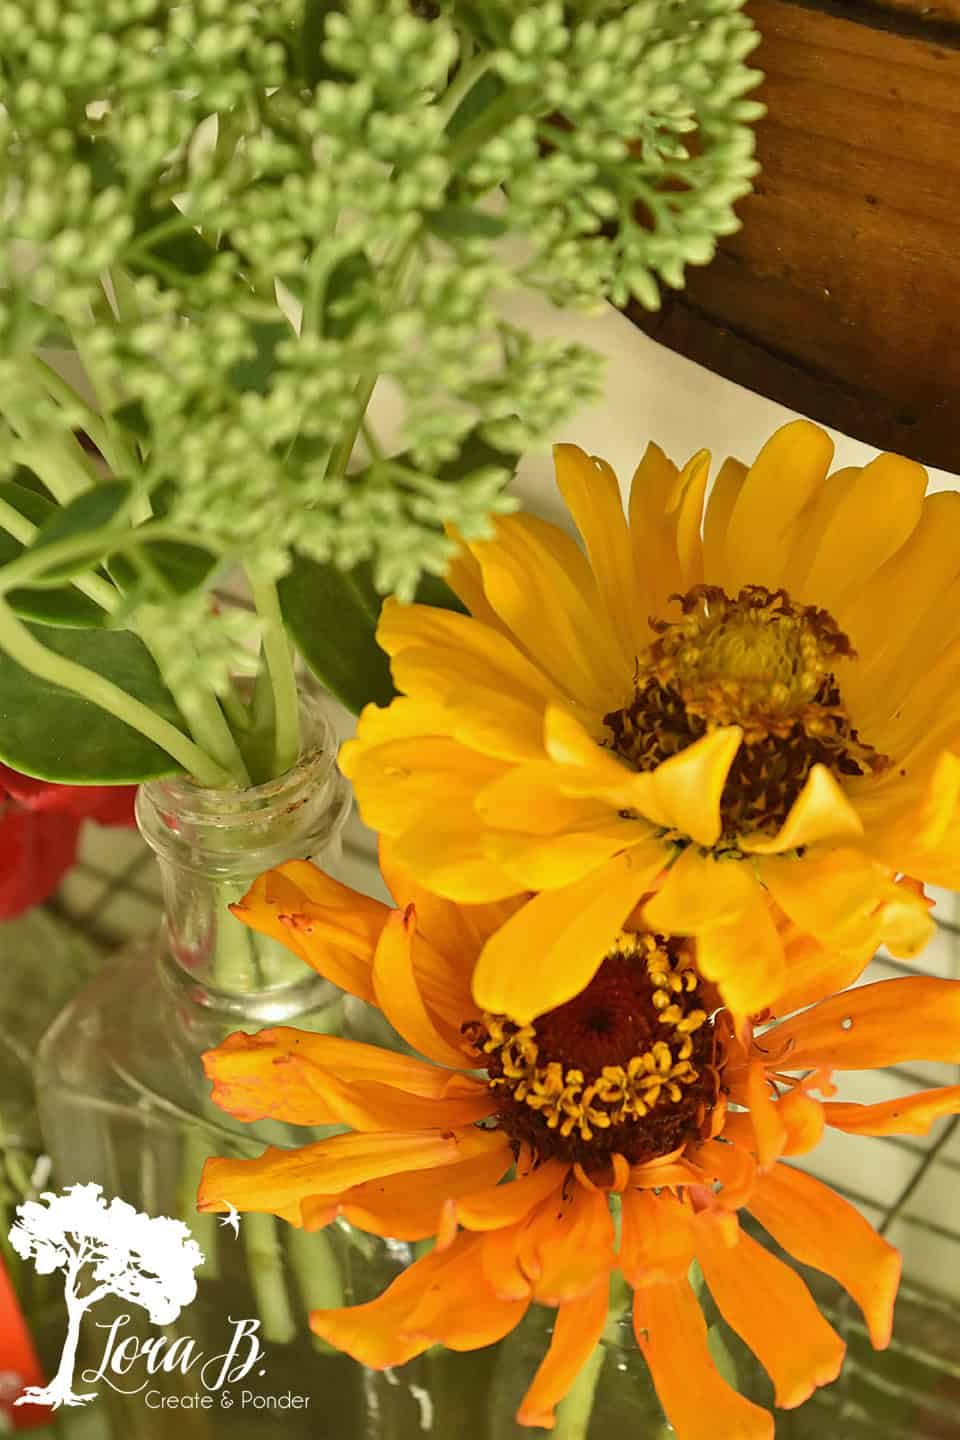 Yellow-toned zinnias